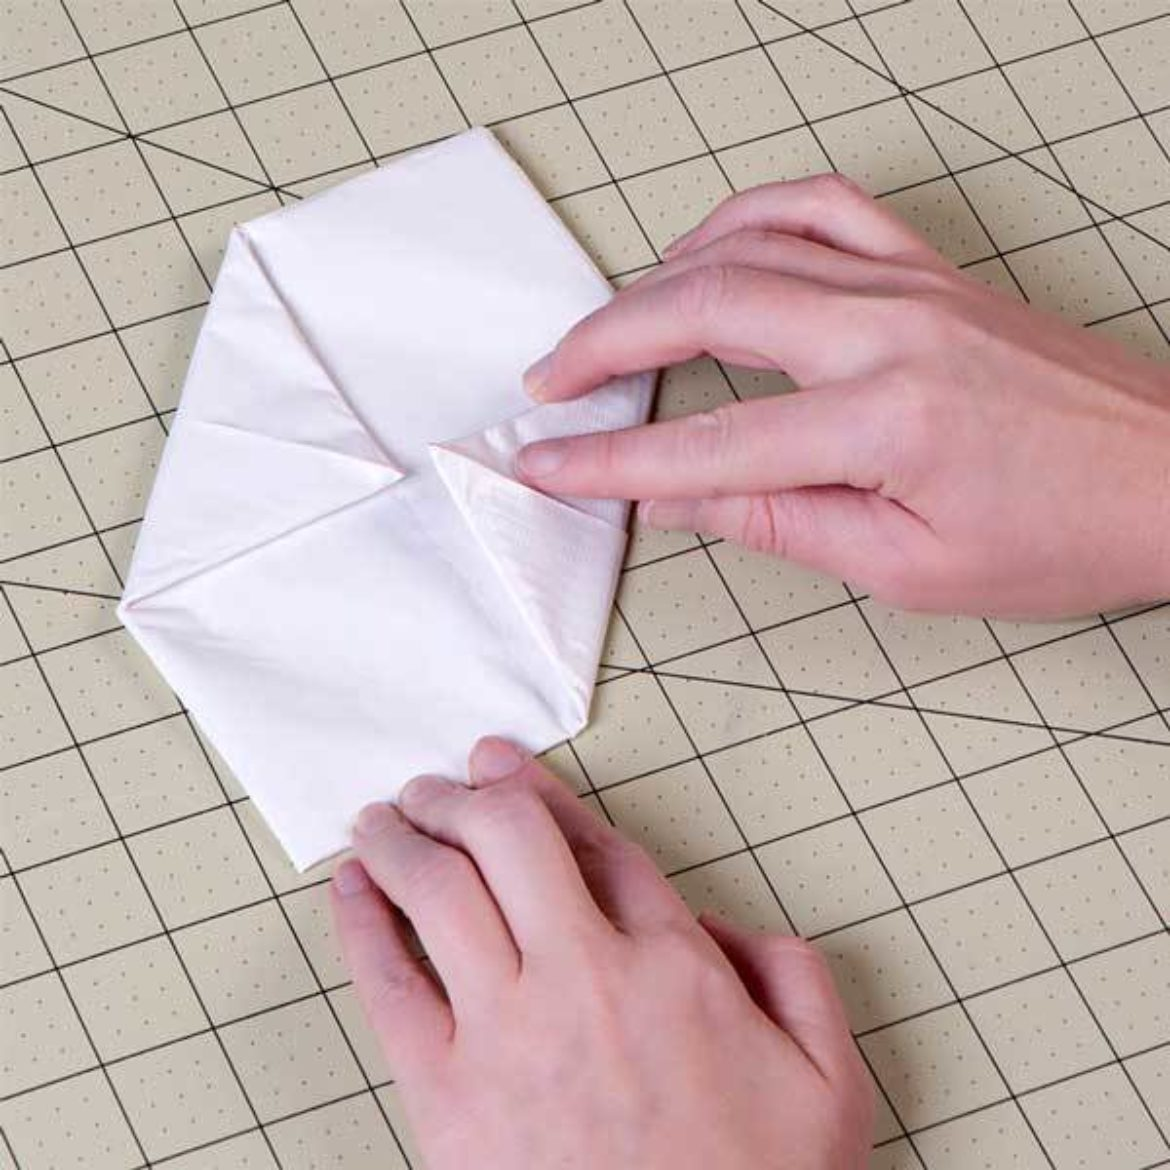 After flipping over, previous step is repeated to form a even smaller square